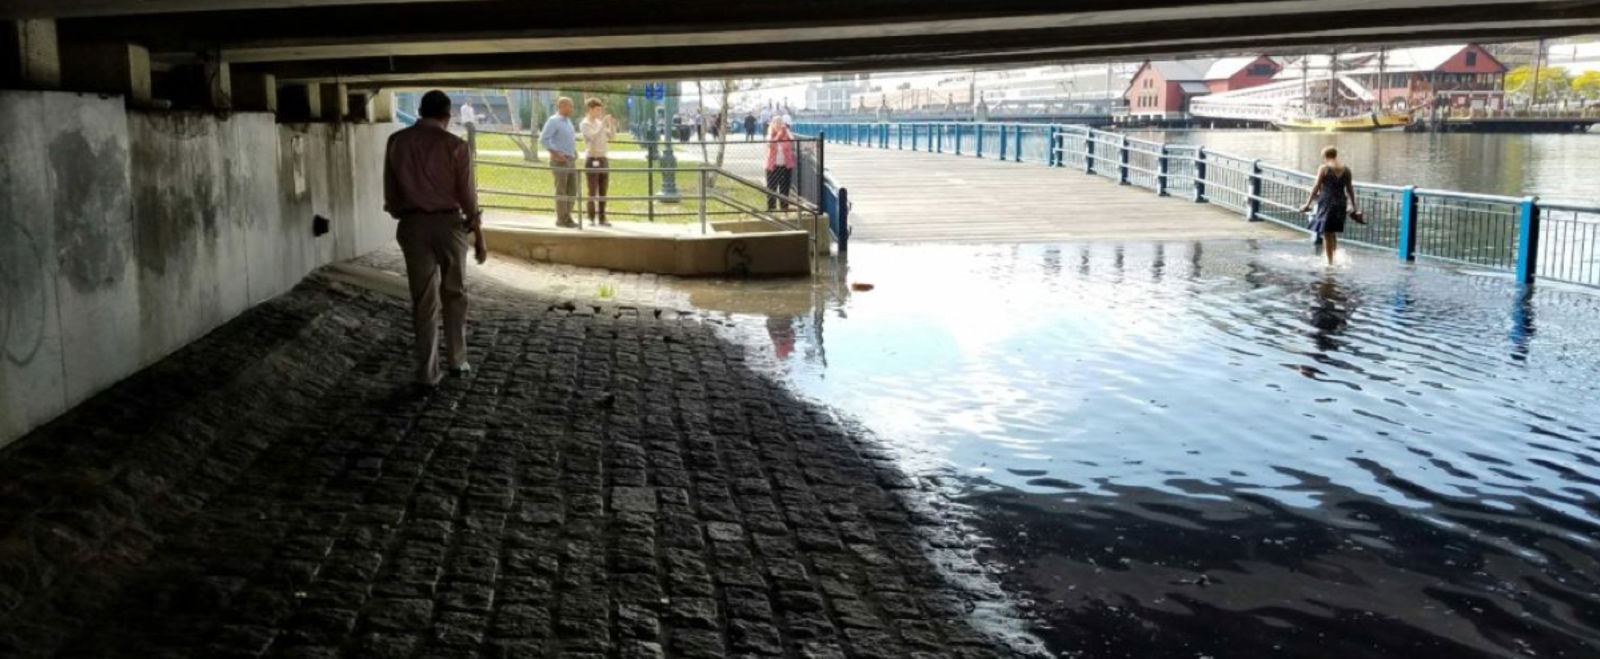 King tide causes flooding in Boston